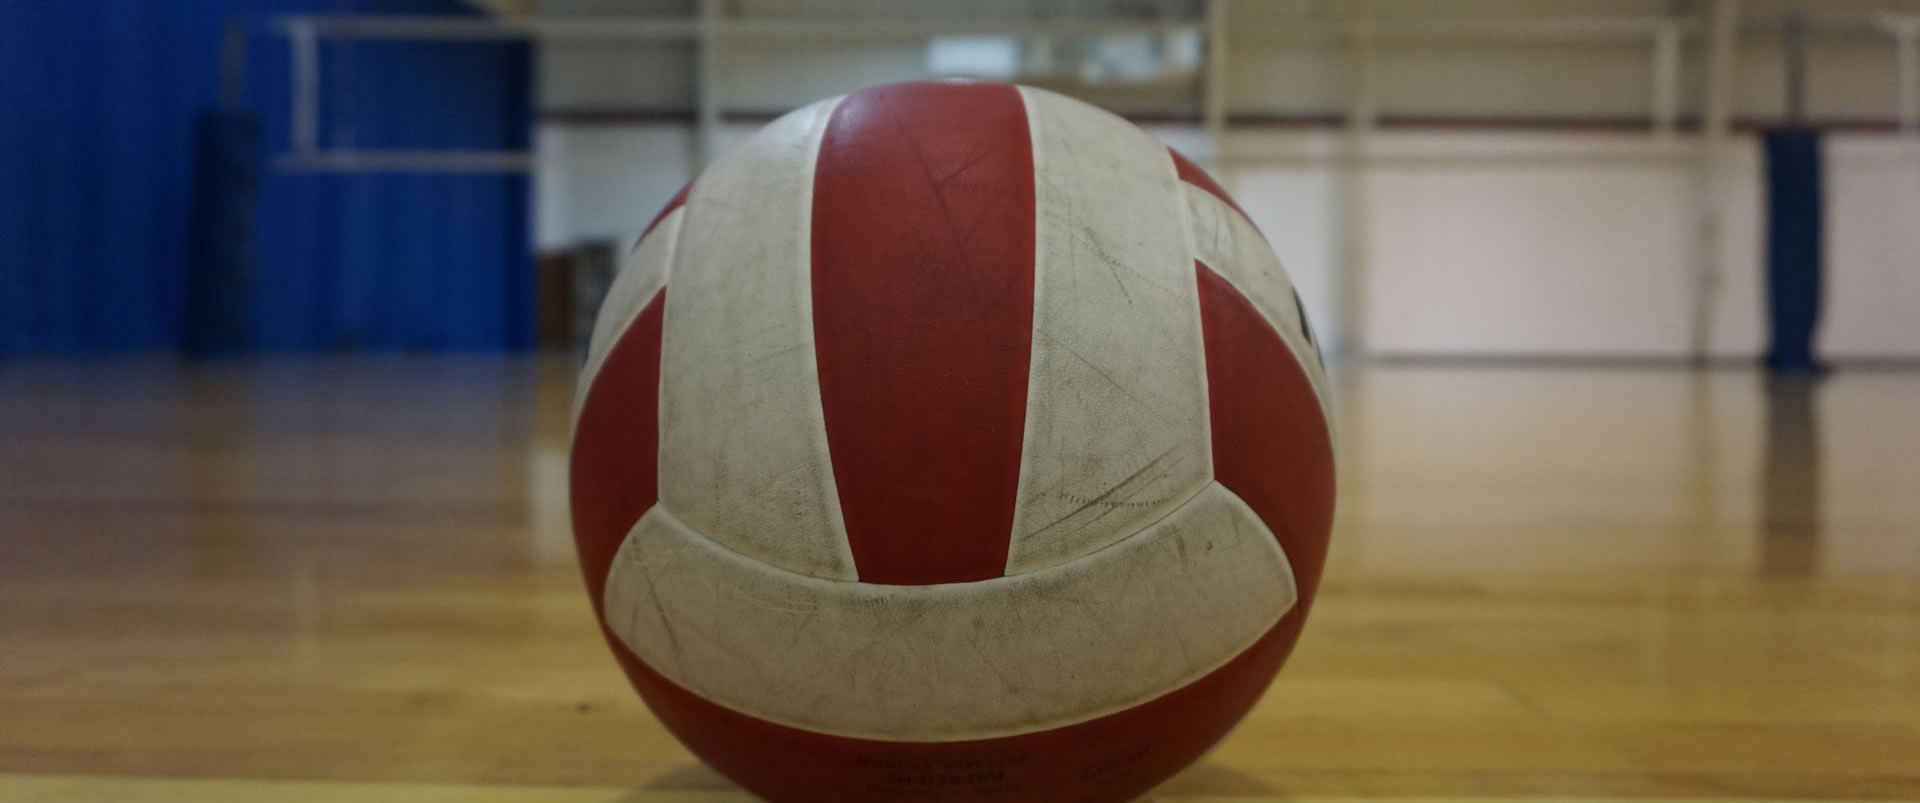 A picture of a volleyball on Madison Turners' volleyball court with the net out of focus in the background